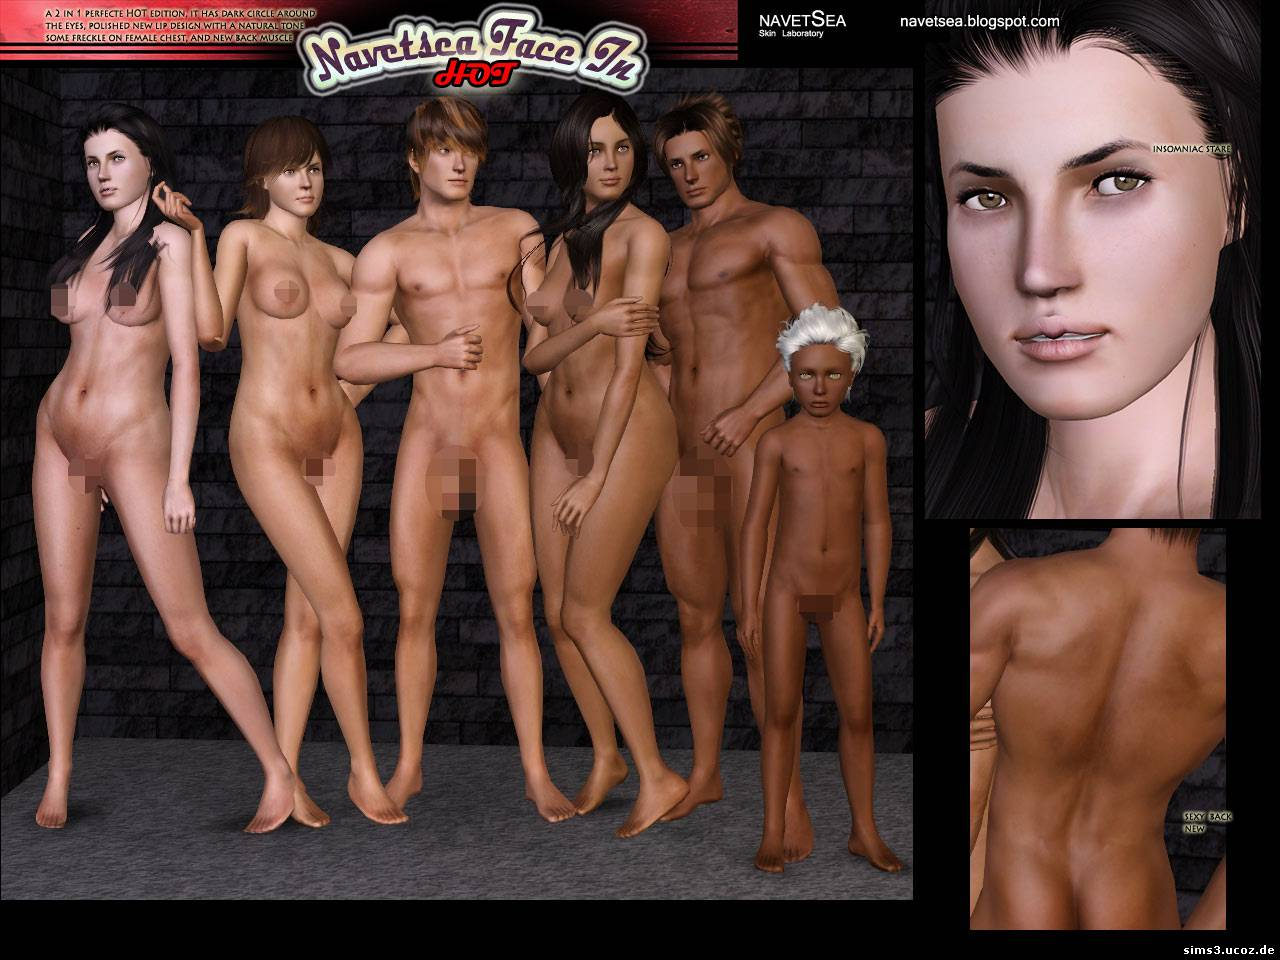 Naked sim mod on male nude lovers